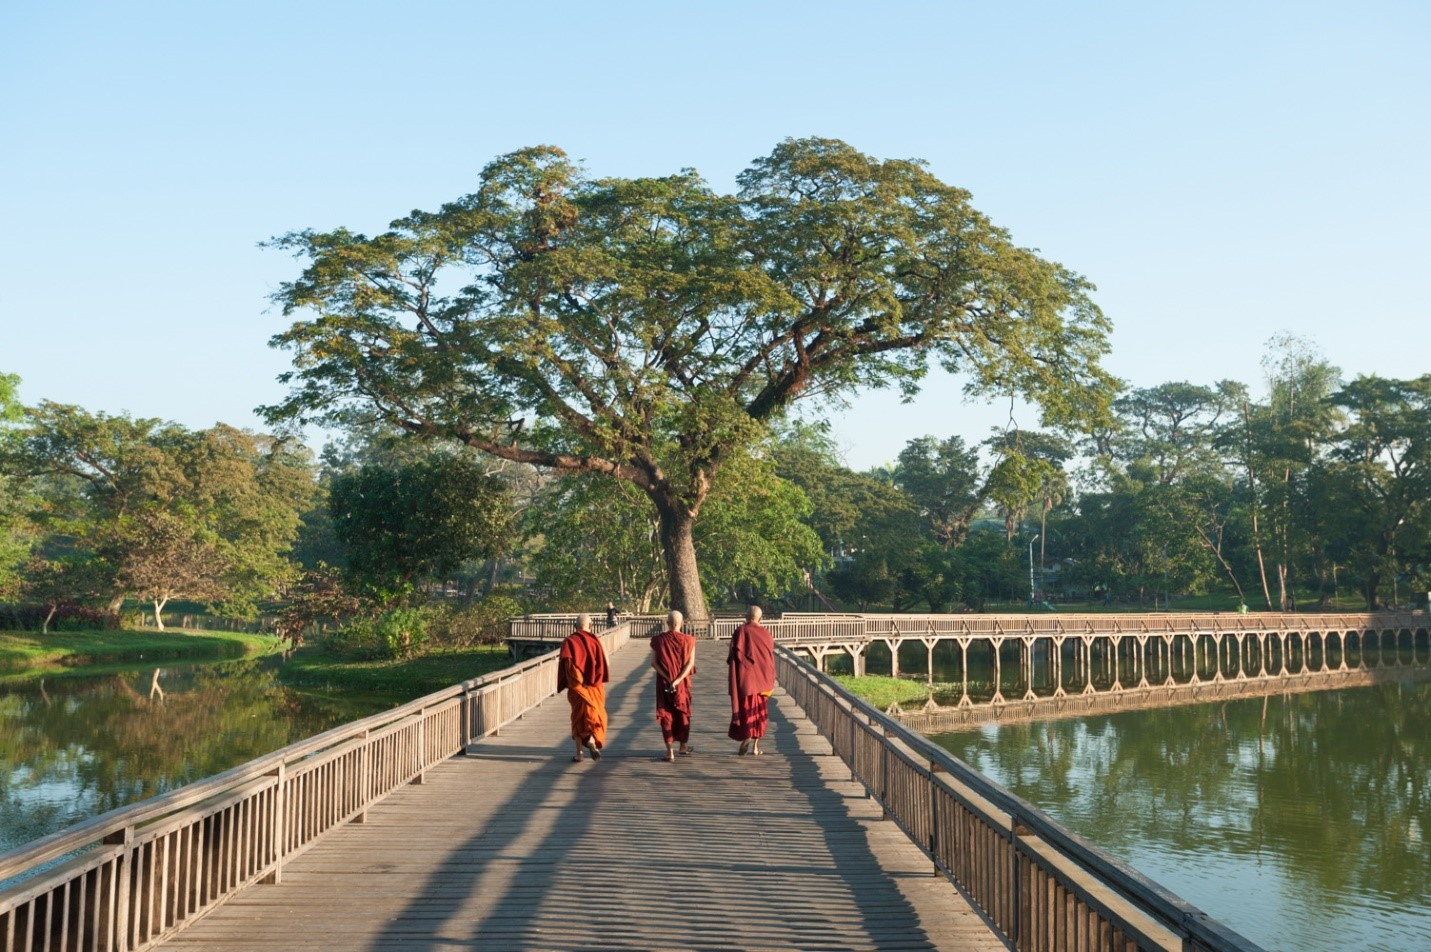 Walking on boardwalk in Kandawgyi Park, Yangon